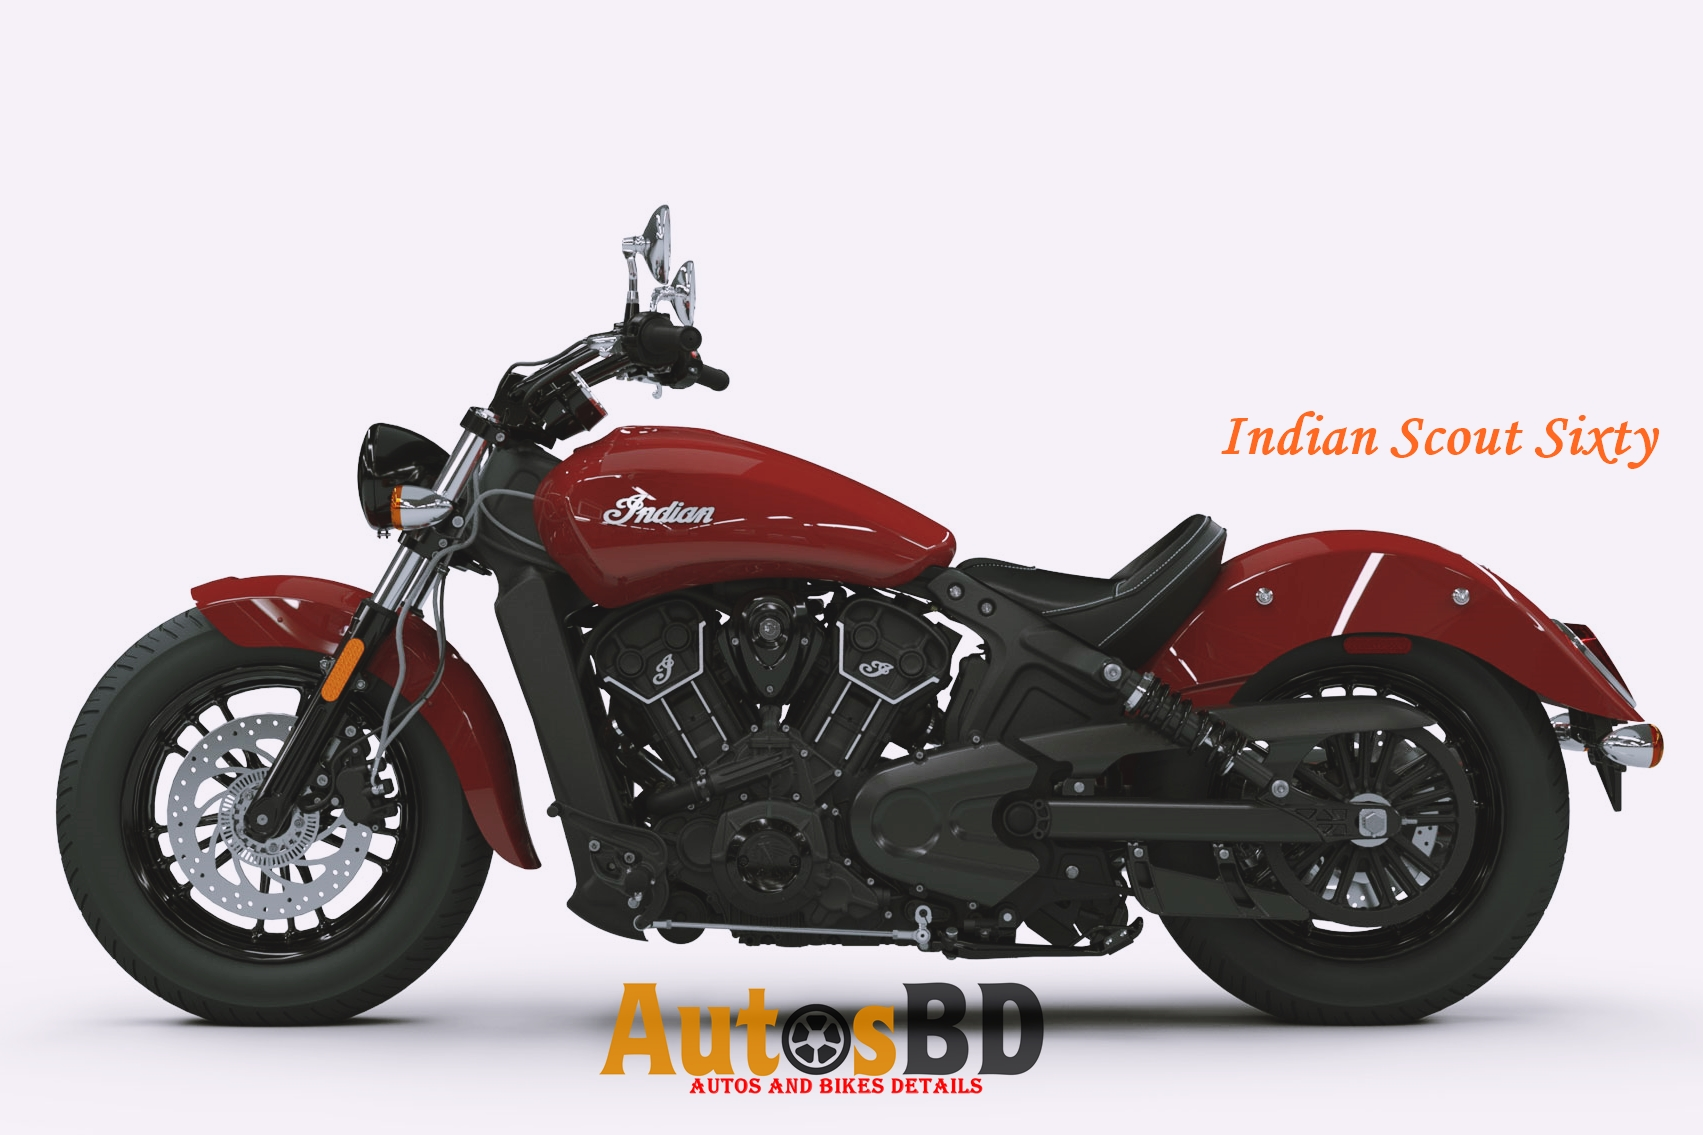 Indian Scout Sixty Specification